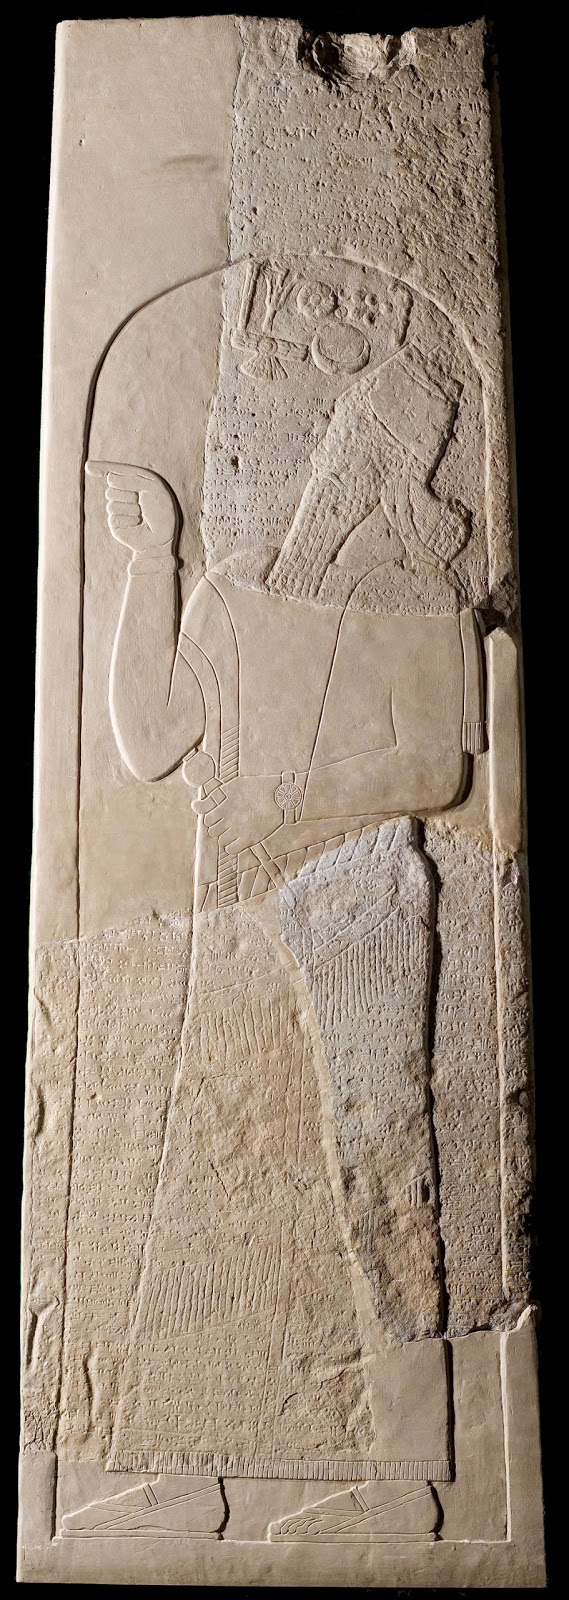 18 - Tiglath-pilser III stele, Assyrian mighty man ruling 745-727 B.C.